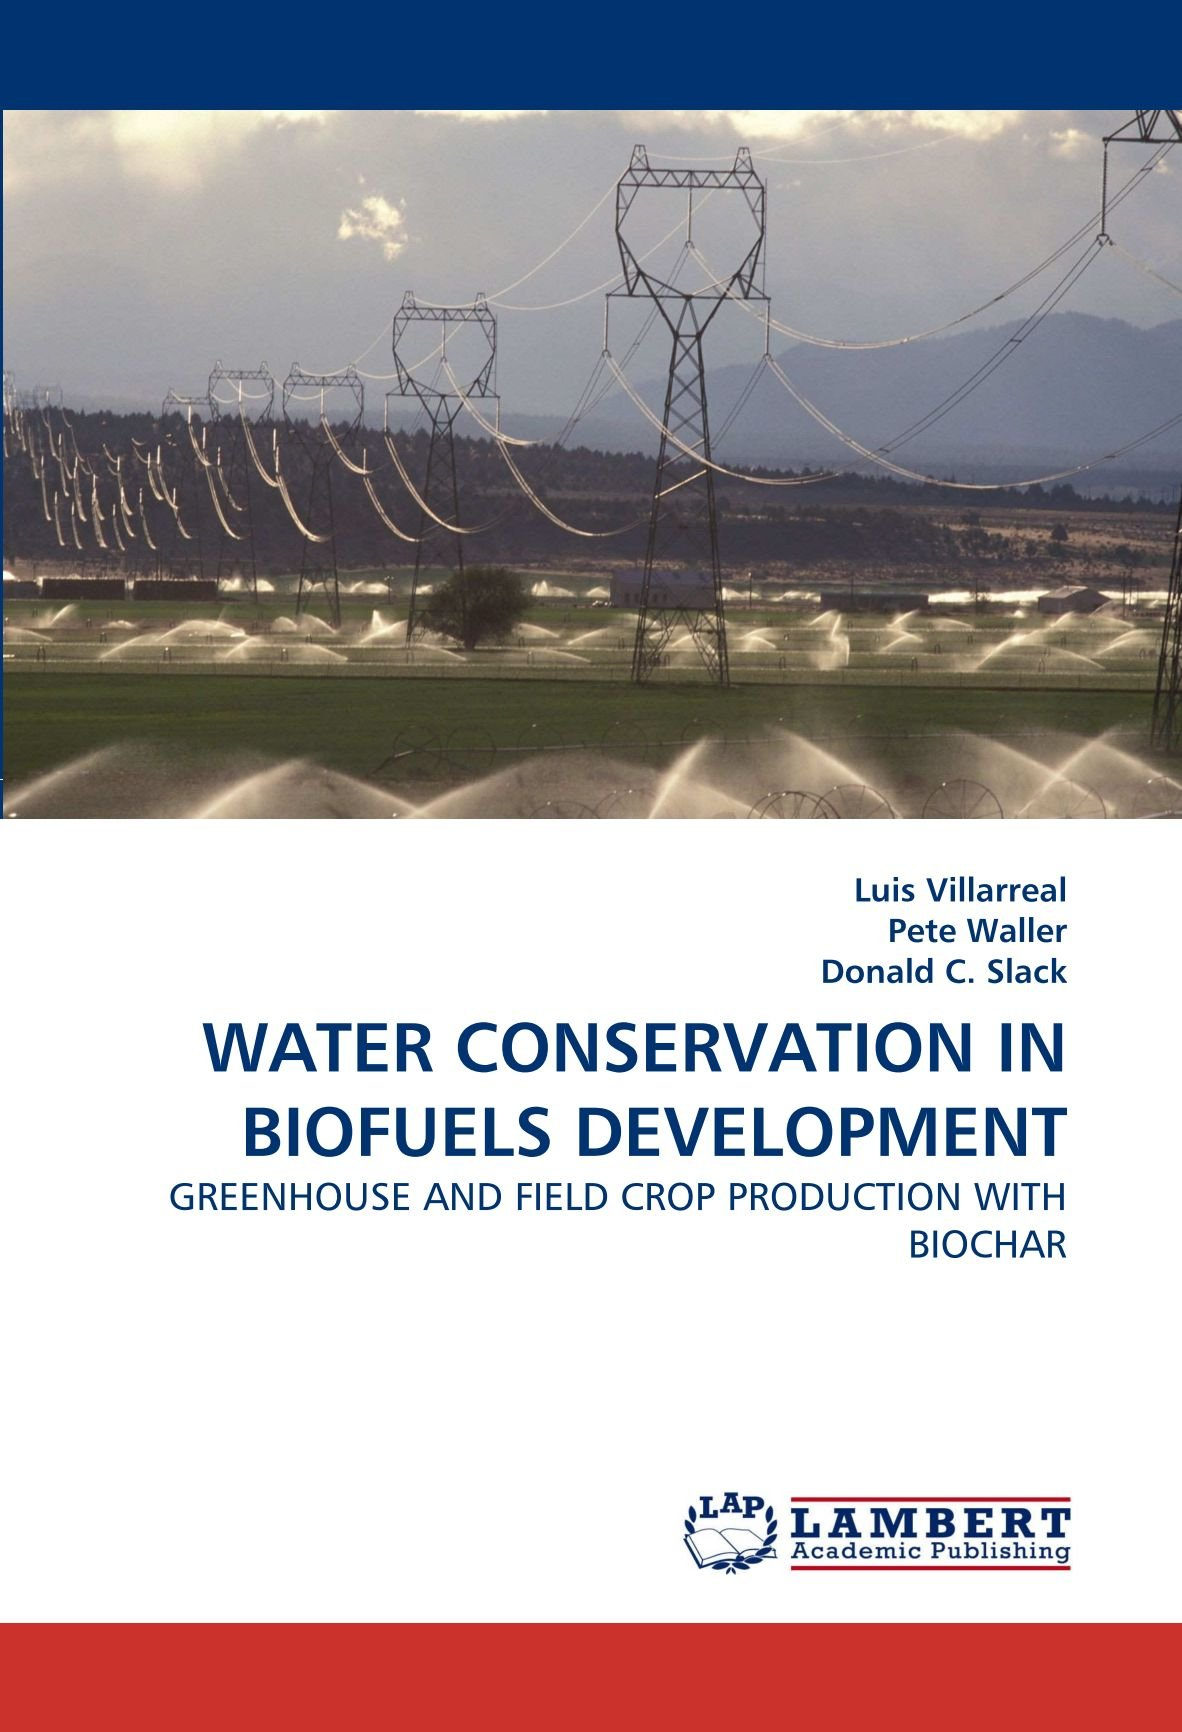 WATER CONSERVATION IN BIOFUELS DEVELOPMENT: GREENHOUSE AND FIELD CROP PRODUCTION WITH BIOCHAR